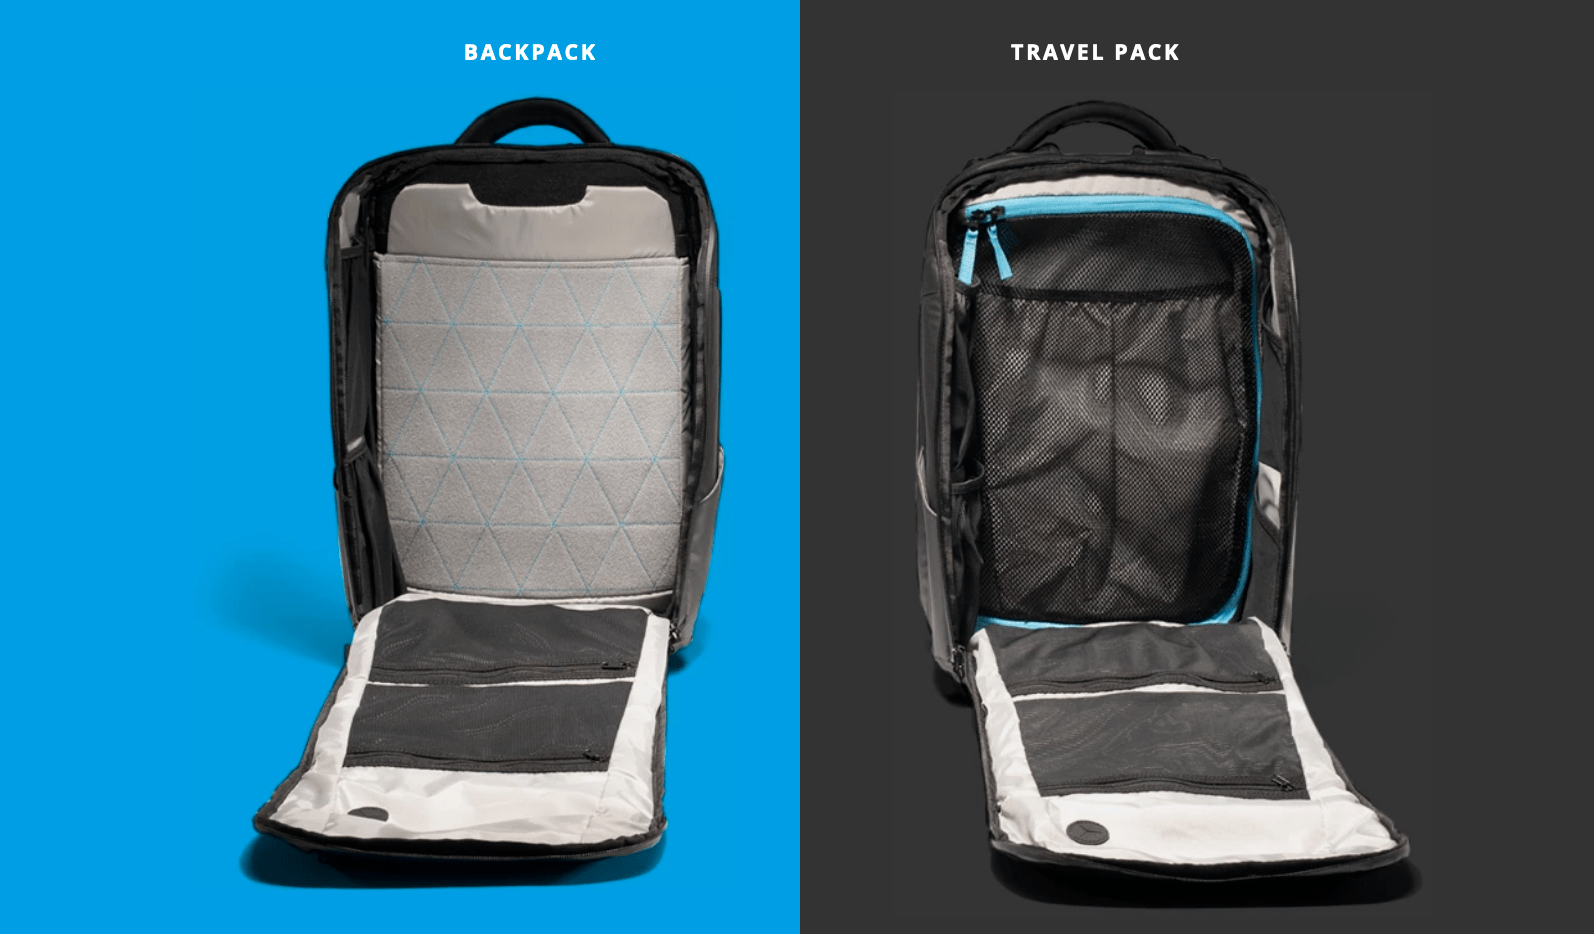 nomatic backpack vs travel pack